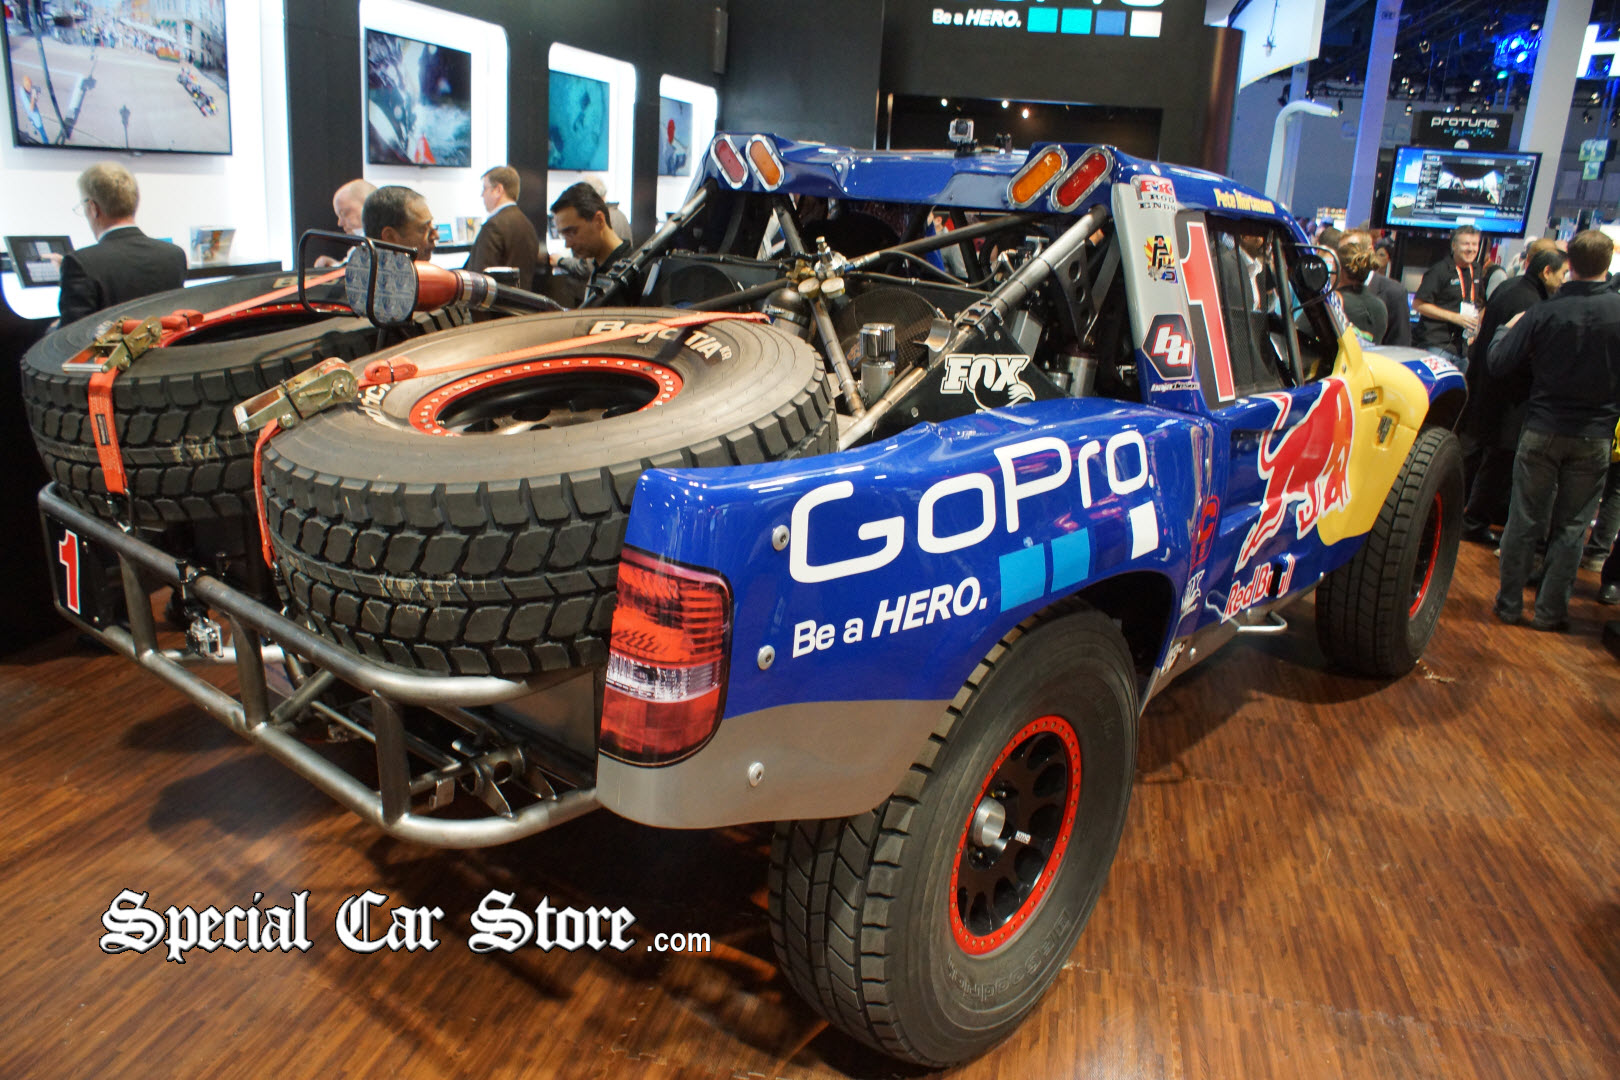 GoPro Rally Truck - CES 2013 | Special Car Store